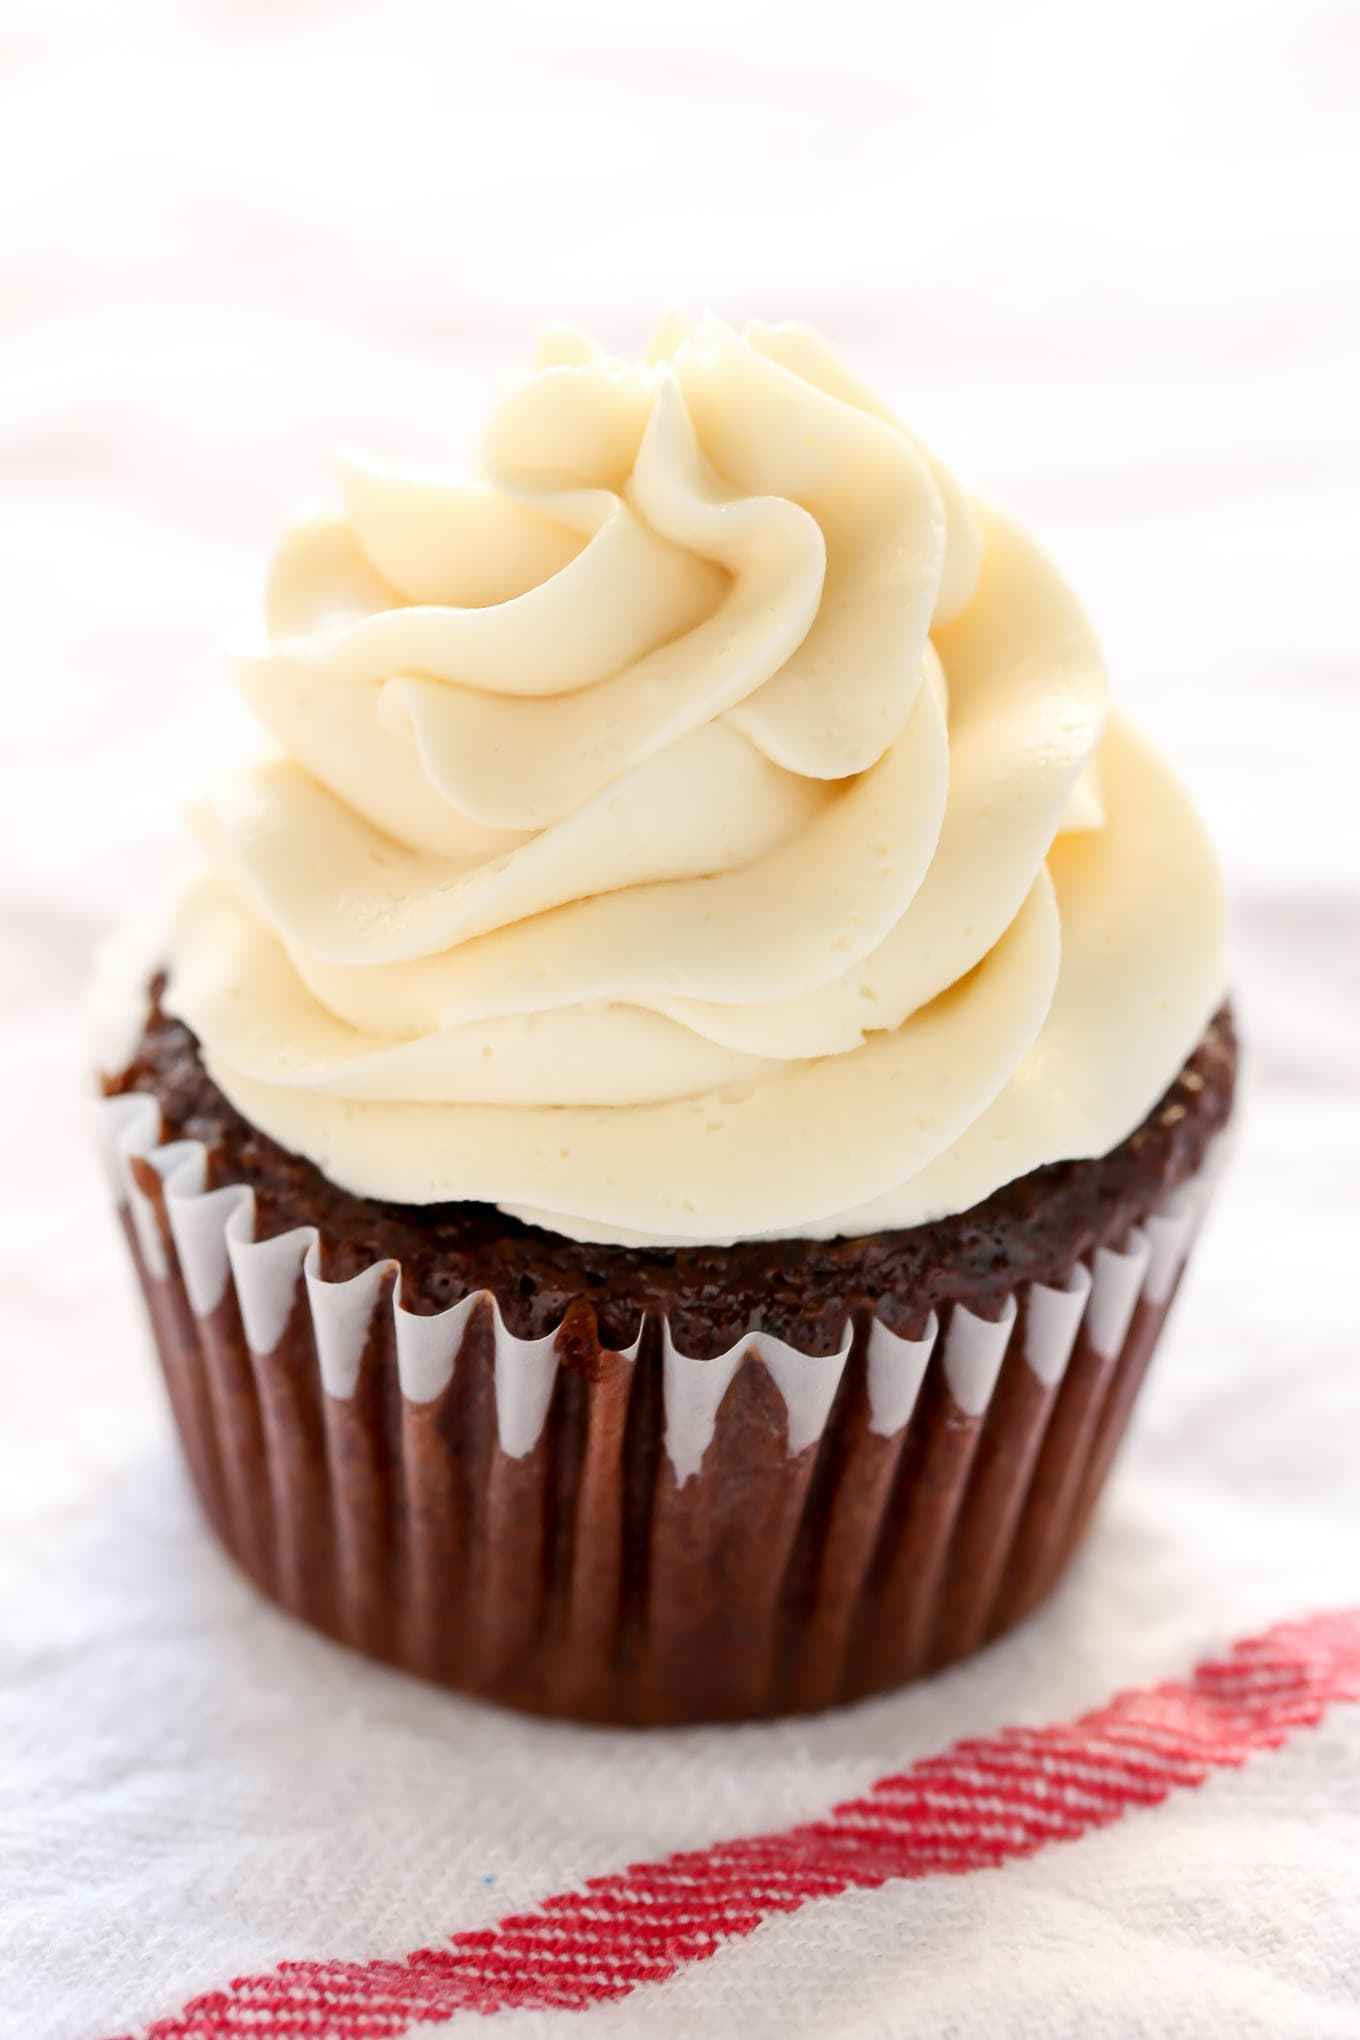 How To Make Homemade Cupcakes  How To Make Buttercream Frosting